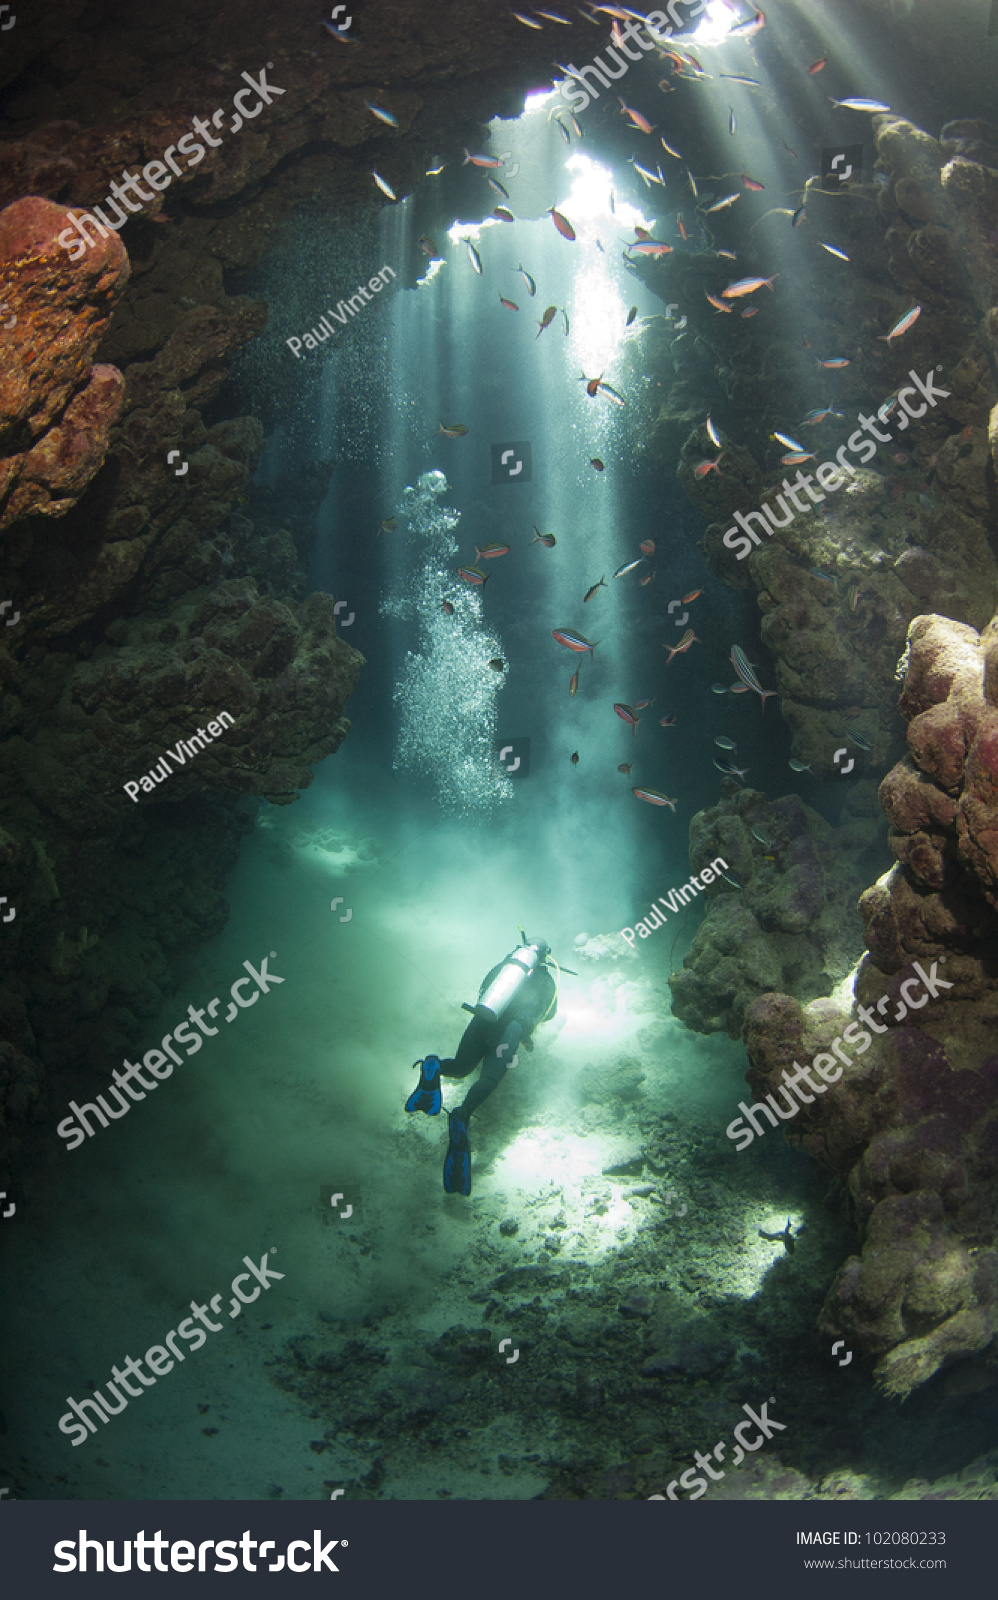 Scuba diver exploring an underwater cave framed in beams of sunlight #102080233